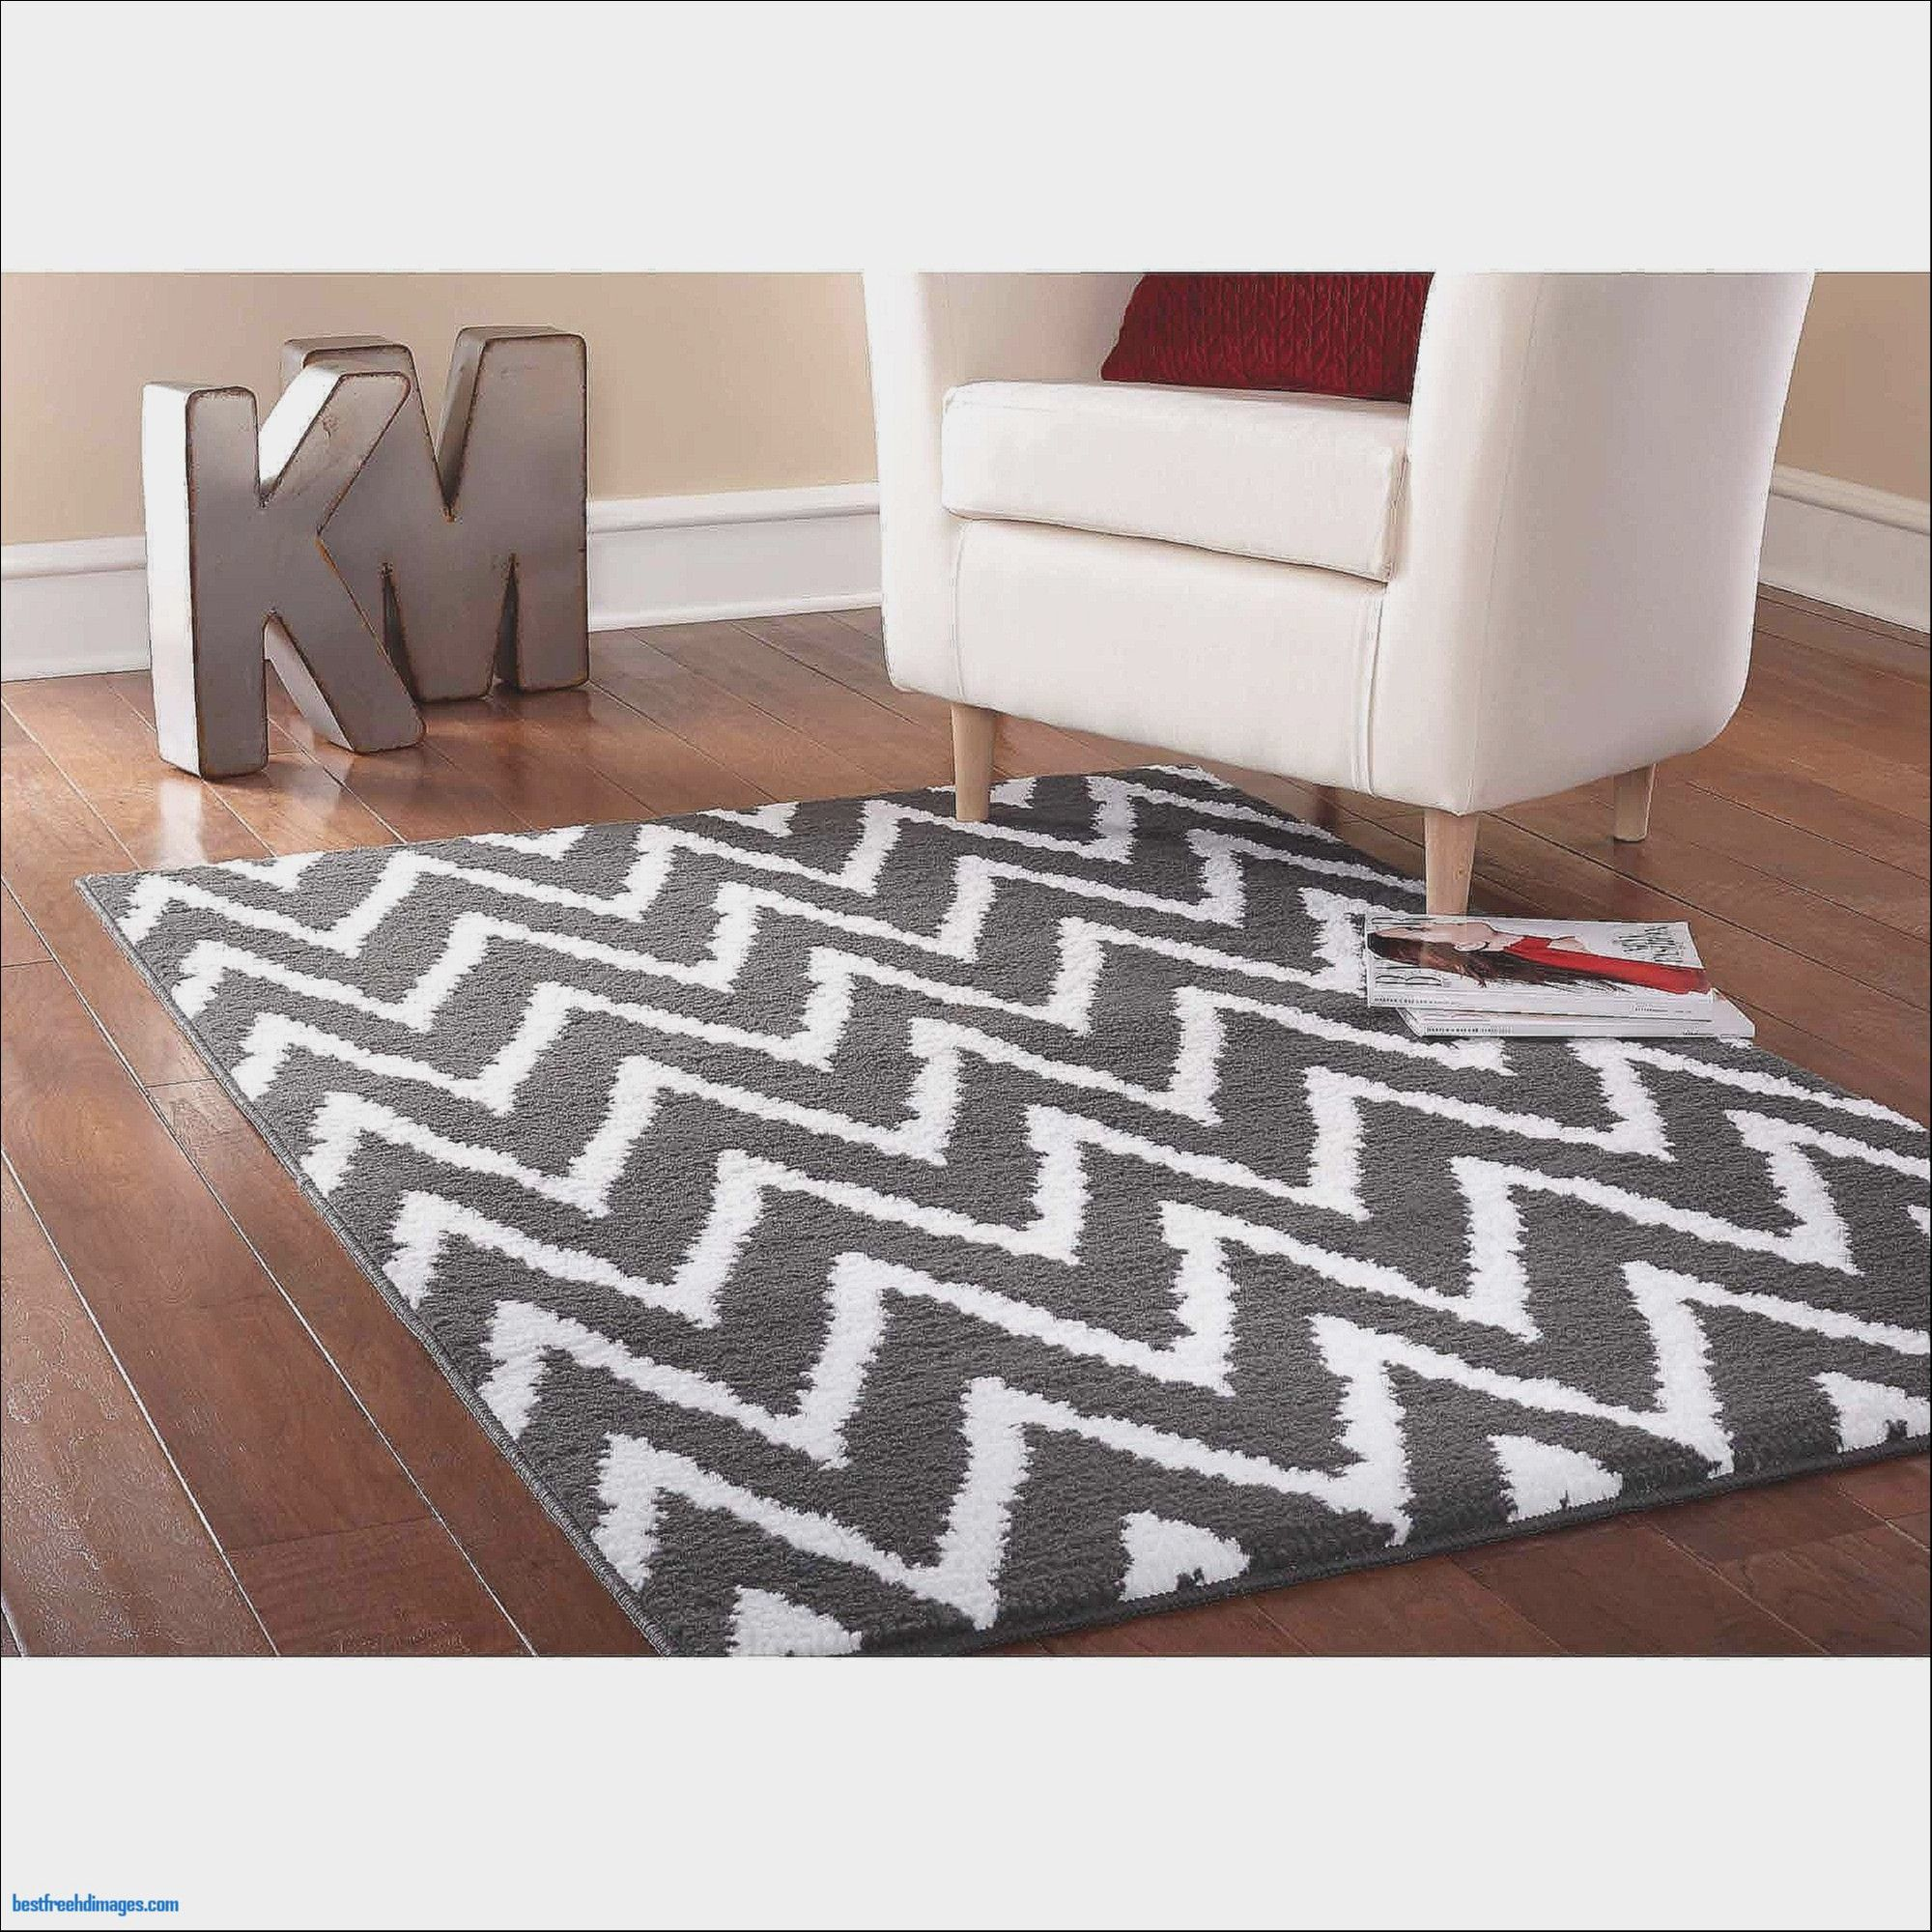 Living Room Rugs 10 X 12 Fresh Picture 39 Of 50 Area Rug 10 X 12 Lovely Lovely Living Room Ru White Rug Target Rug Grey And White Rug